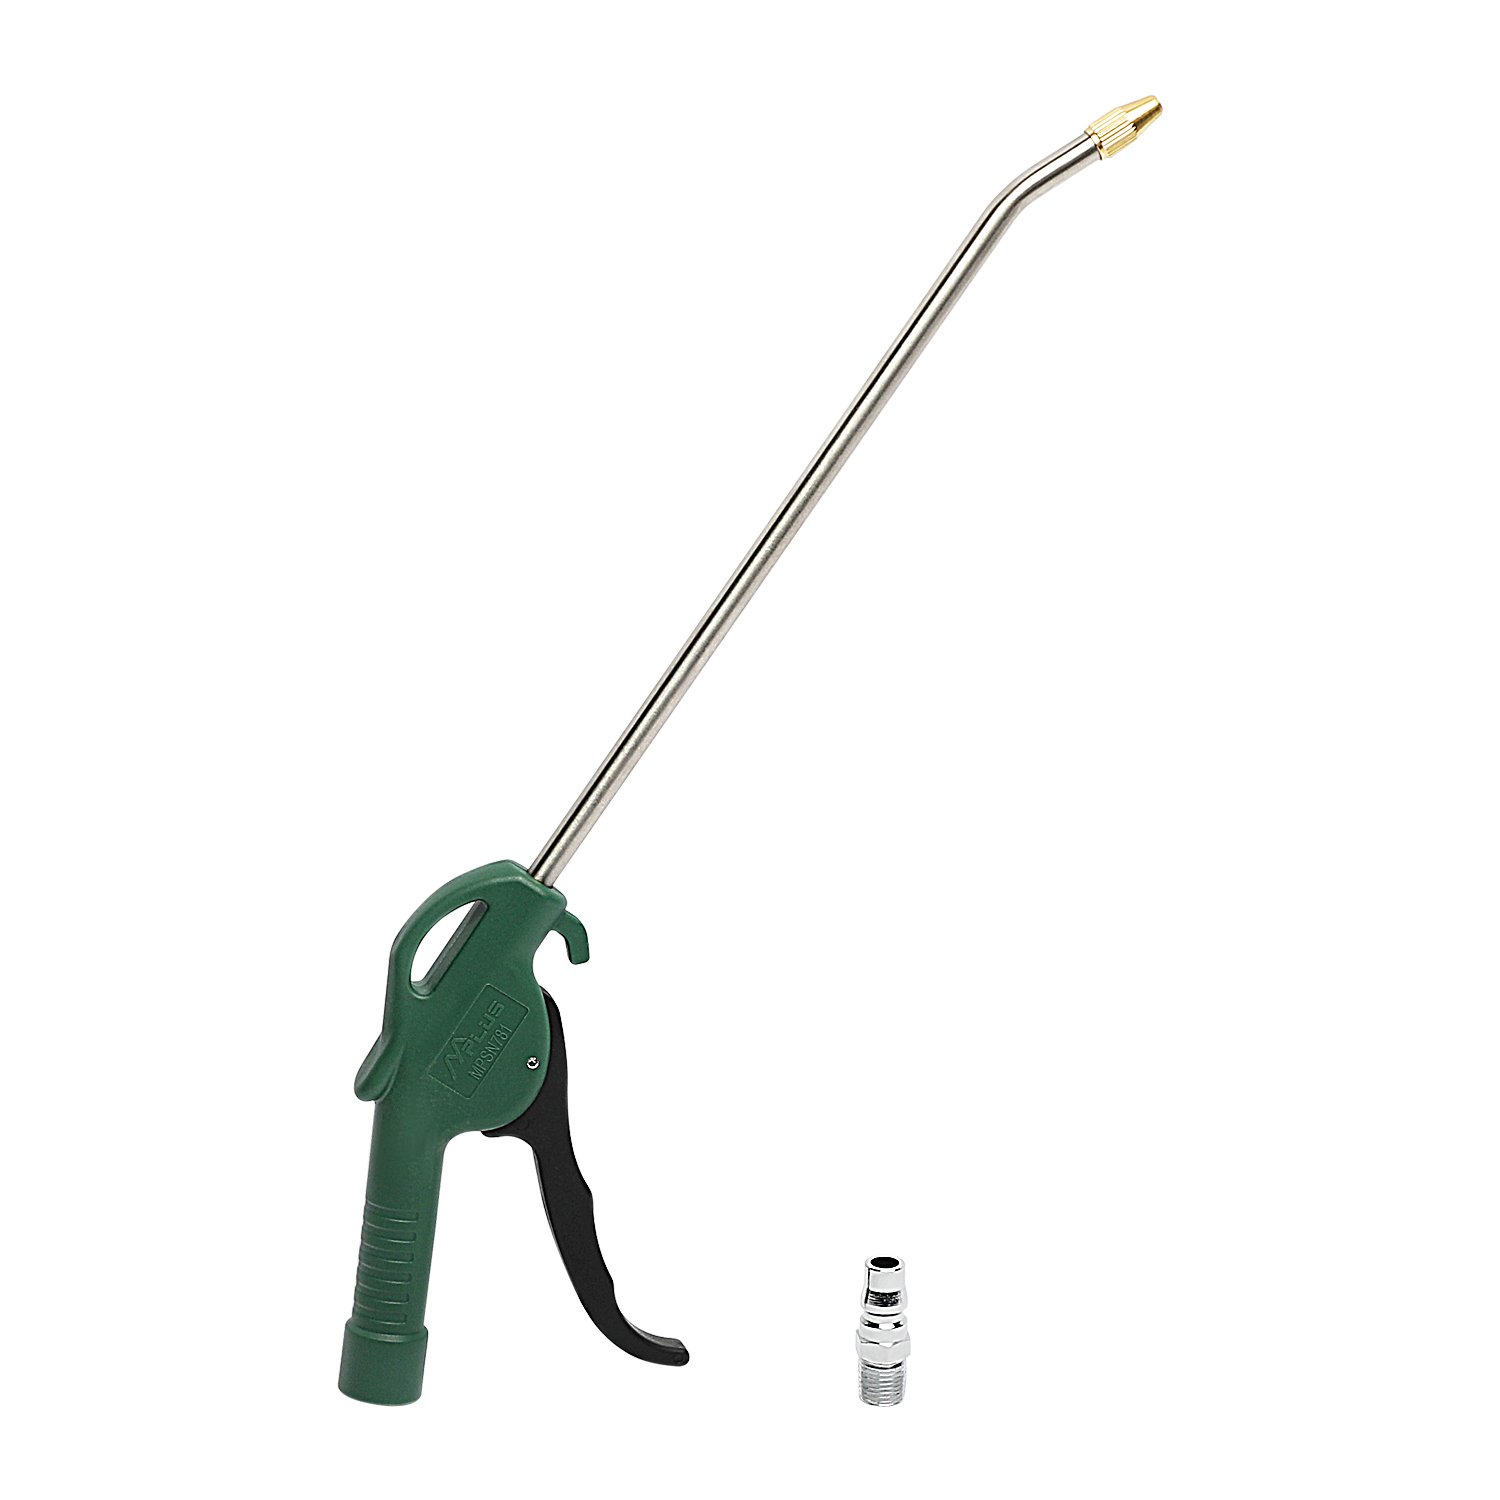 MPLUS 10'' Air Blow Gun w/ Adaptor Brass Tip Powerful Pneumatic  Blowing Dust Gun for Cleaning Debris from a Work Space, Drying Wet Surfaces, Blowing Up Balloons and More by M PLUS